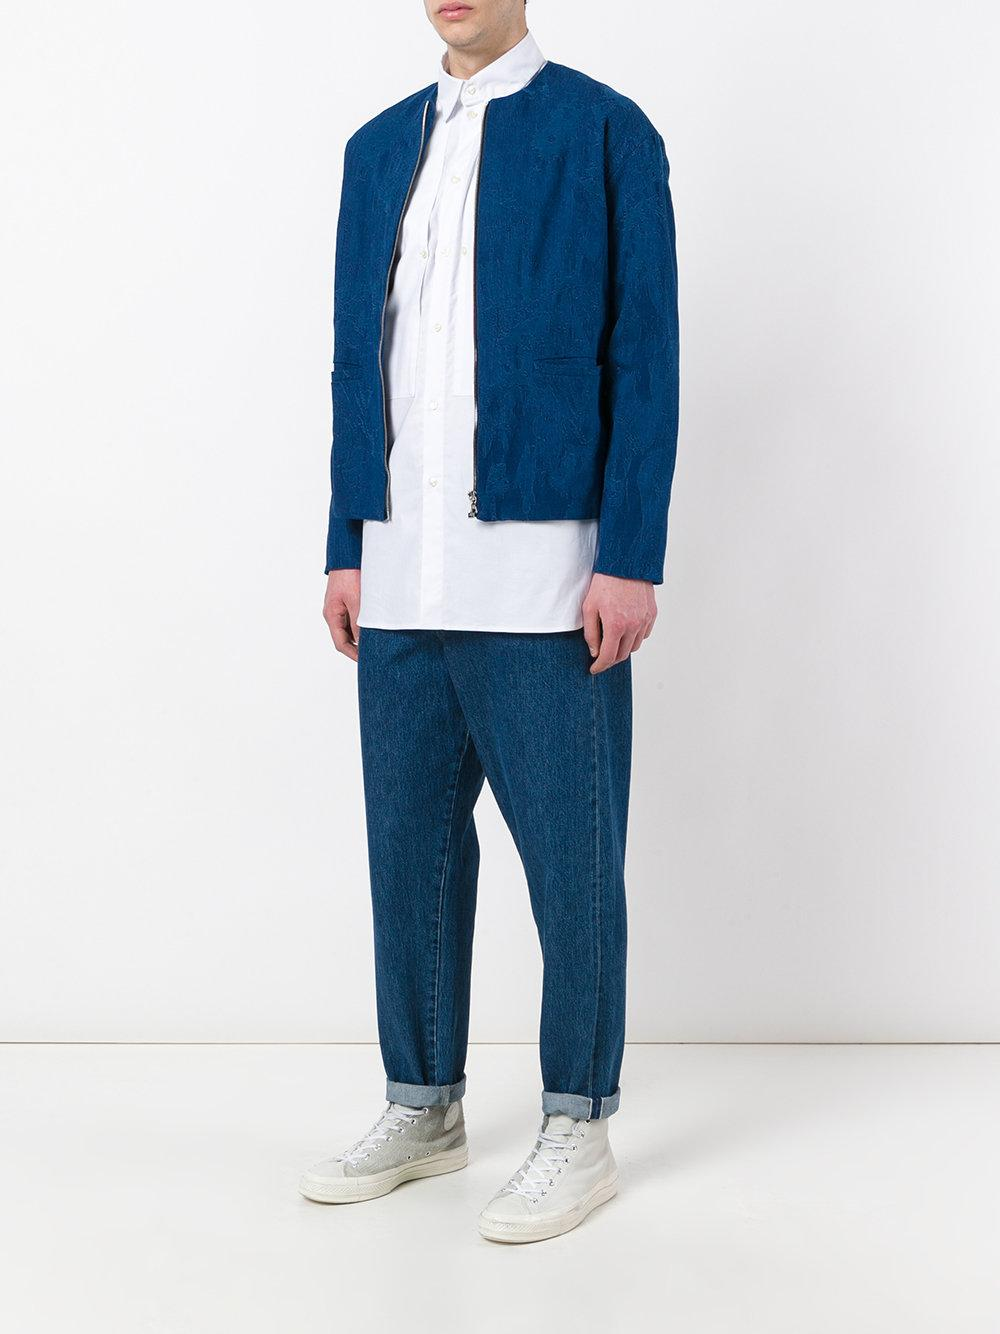 Natural Selection Cotton Tarum Jacket in Blue for Men